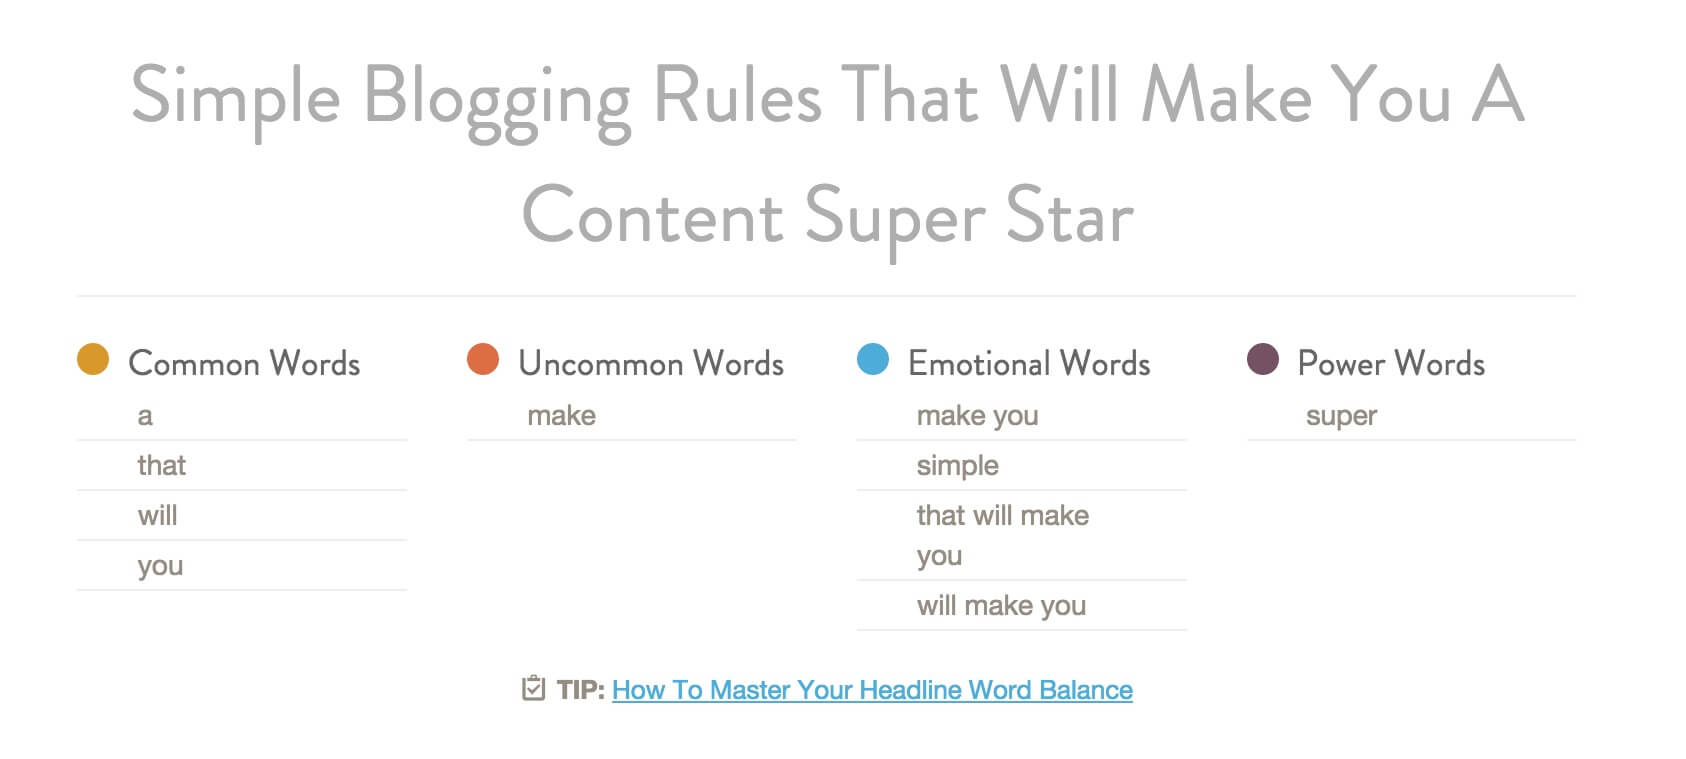 simple blogging rule for turning into a super star and generate stunning royalty images